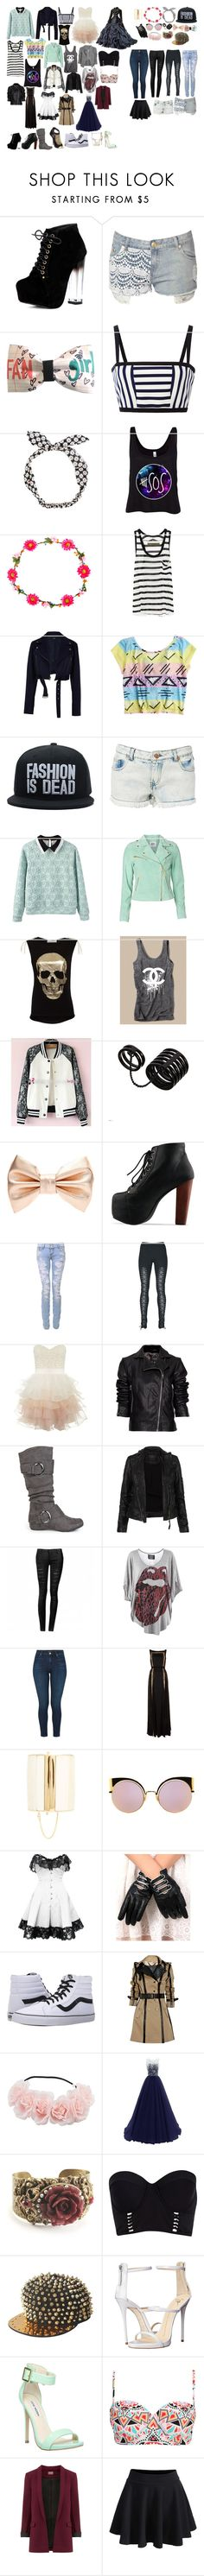 """my style 13"" by keeliewatsonoffical ❤ liked on Polyvore featuring Jane Norman, Tanya Taylor, Enza Costa, TIBI, Vero Moda, Misumi, Chanel, Munai, ASOS and Lipsy"